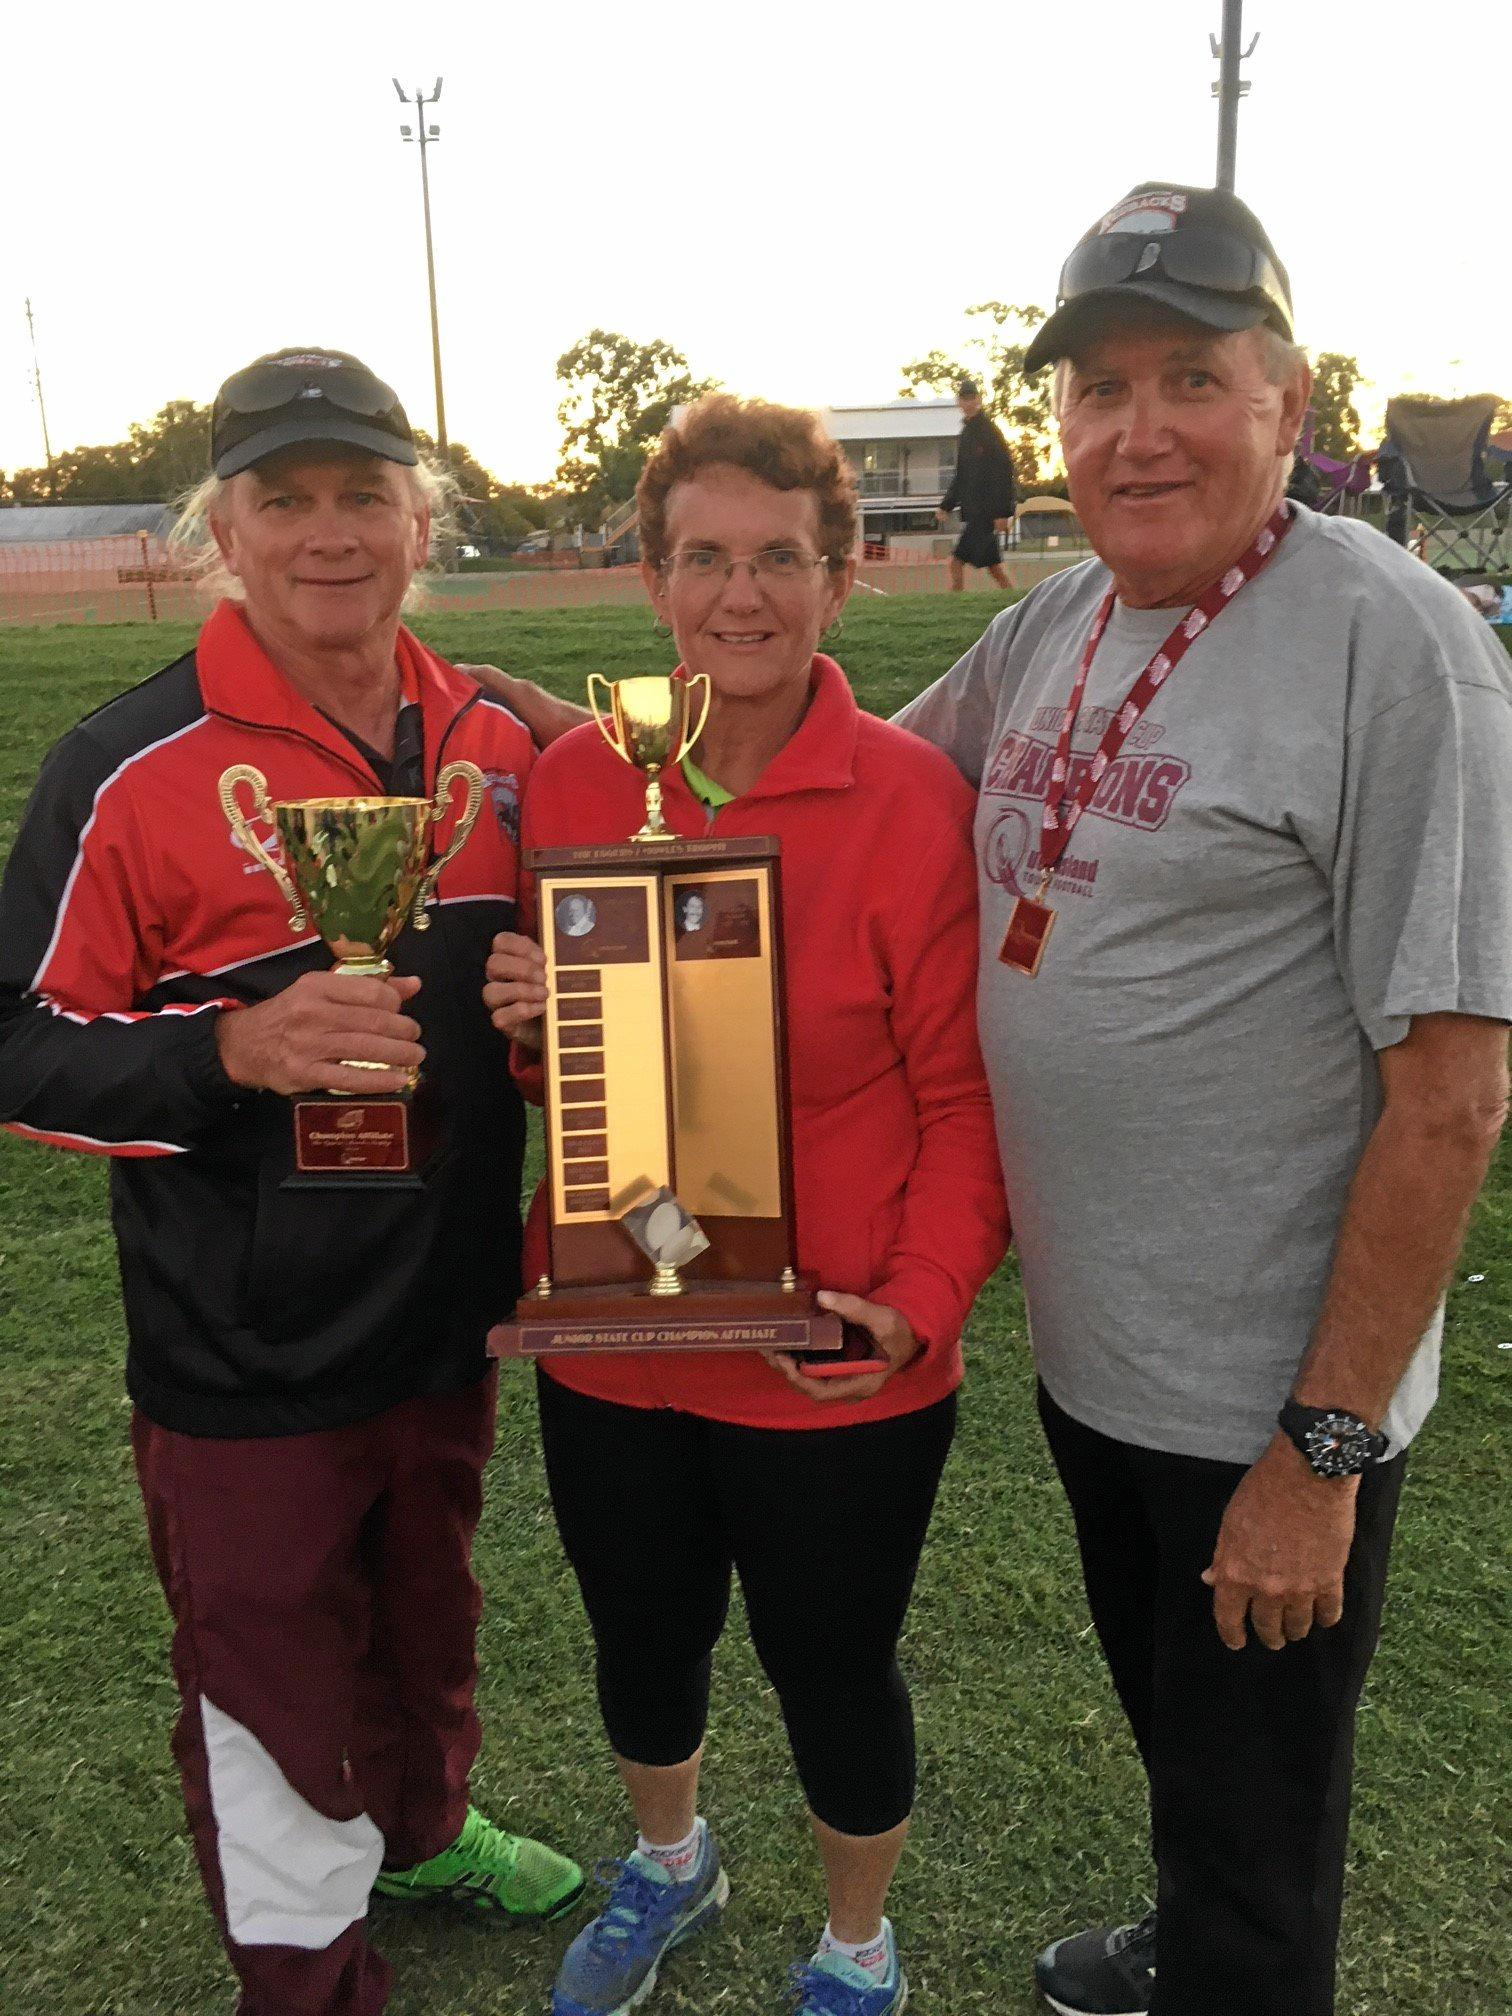 Rockhampton Junior Touch president Mick Callow, administrator Denise Edwards and Rockhampton Touch president Gary Benbow are all smiles after collecting the Champion Affiliate Cup at the 2018 Junior State Cup.